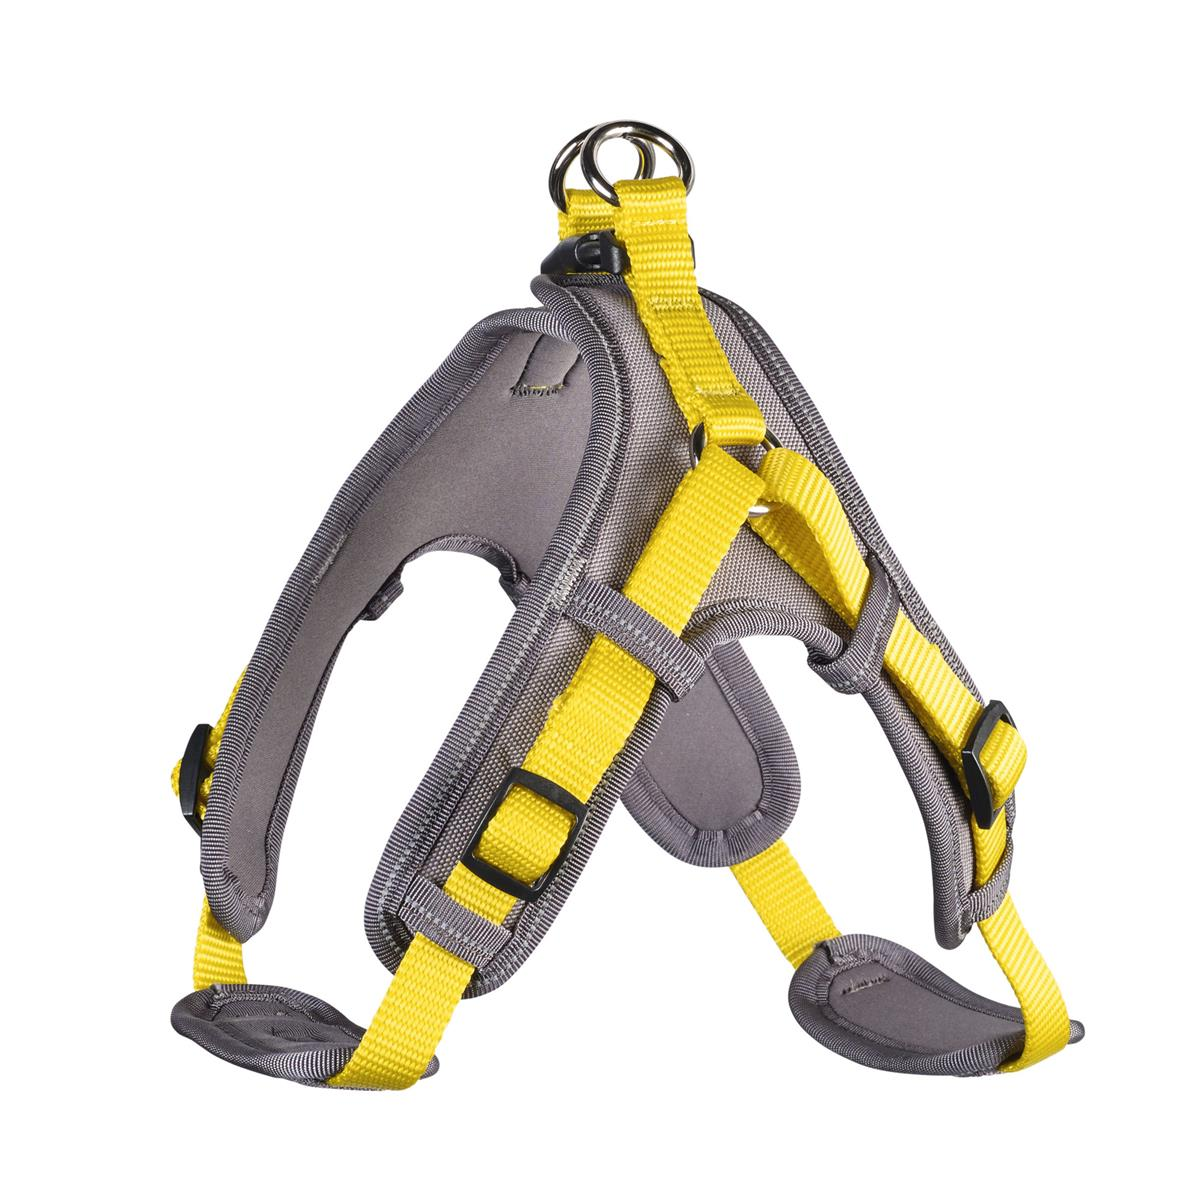 Harness Neoprene Vario Quick S 45-55 cm, 15 mm yellow